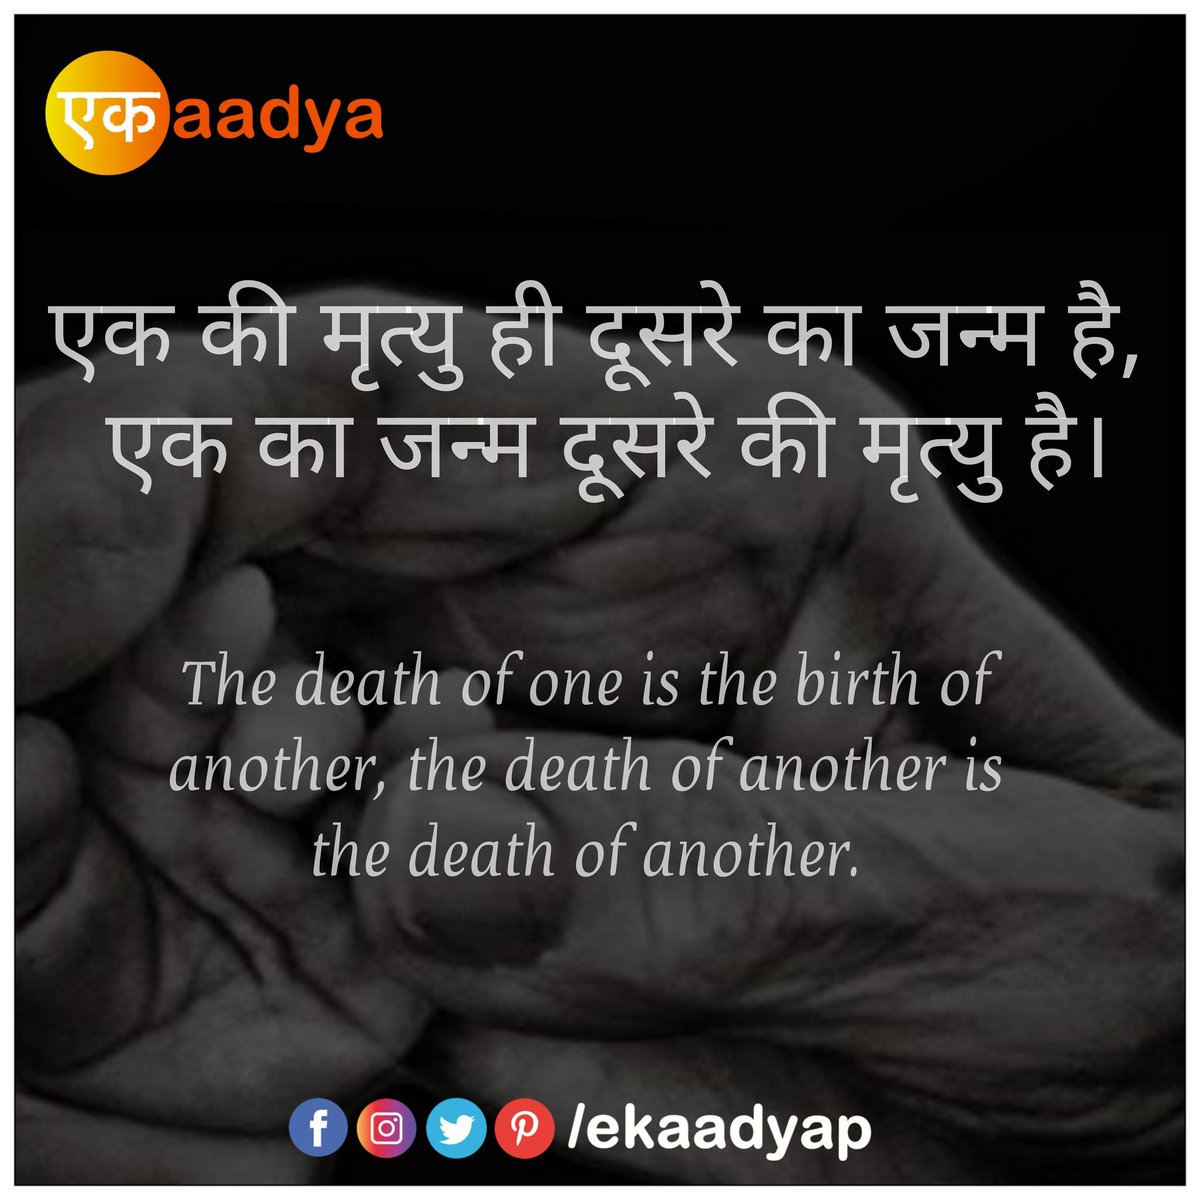 Get motivated by @ekaadyap   #motivation #motivationalquotes #qoutsoftheday #qouts #lifelessons #lifequotes #hindimotivation #hindipost #hindiquotes #hindiwords #hindi  #thoughtoftheday #thoughts #respect #lifemorals #indianlife #human #birth #death #baby #oldage #newborn #oldman https://t.co/2JJkSgqDIe